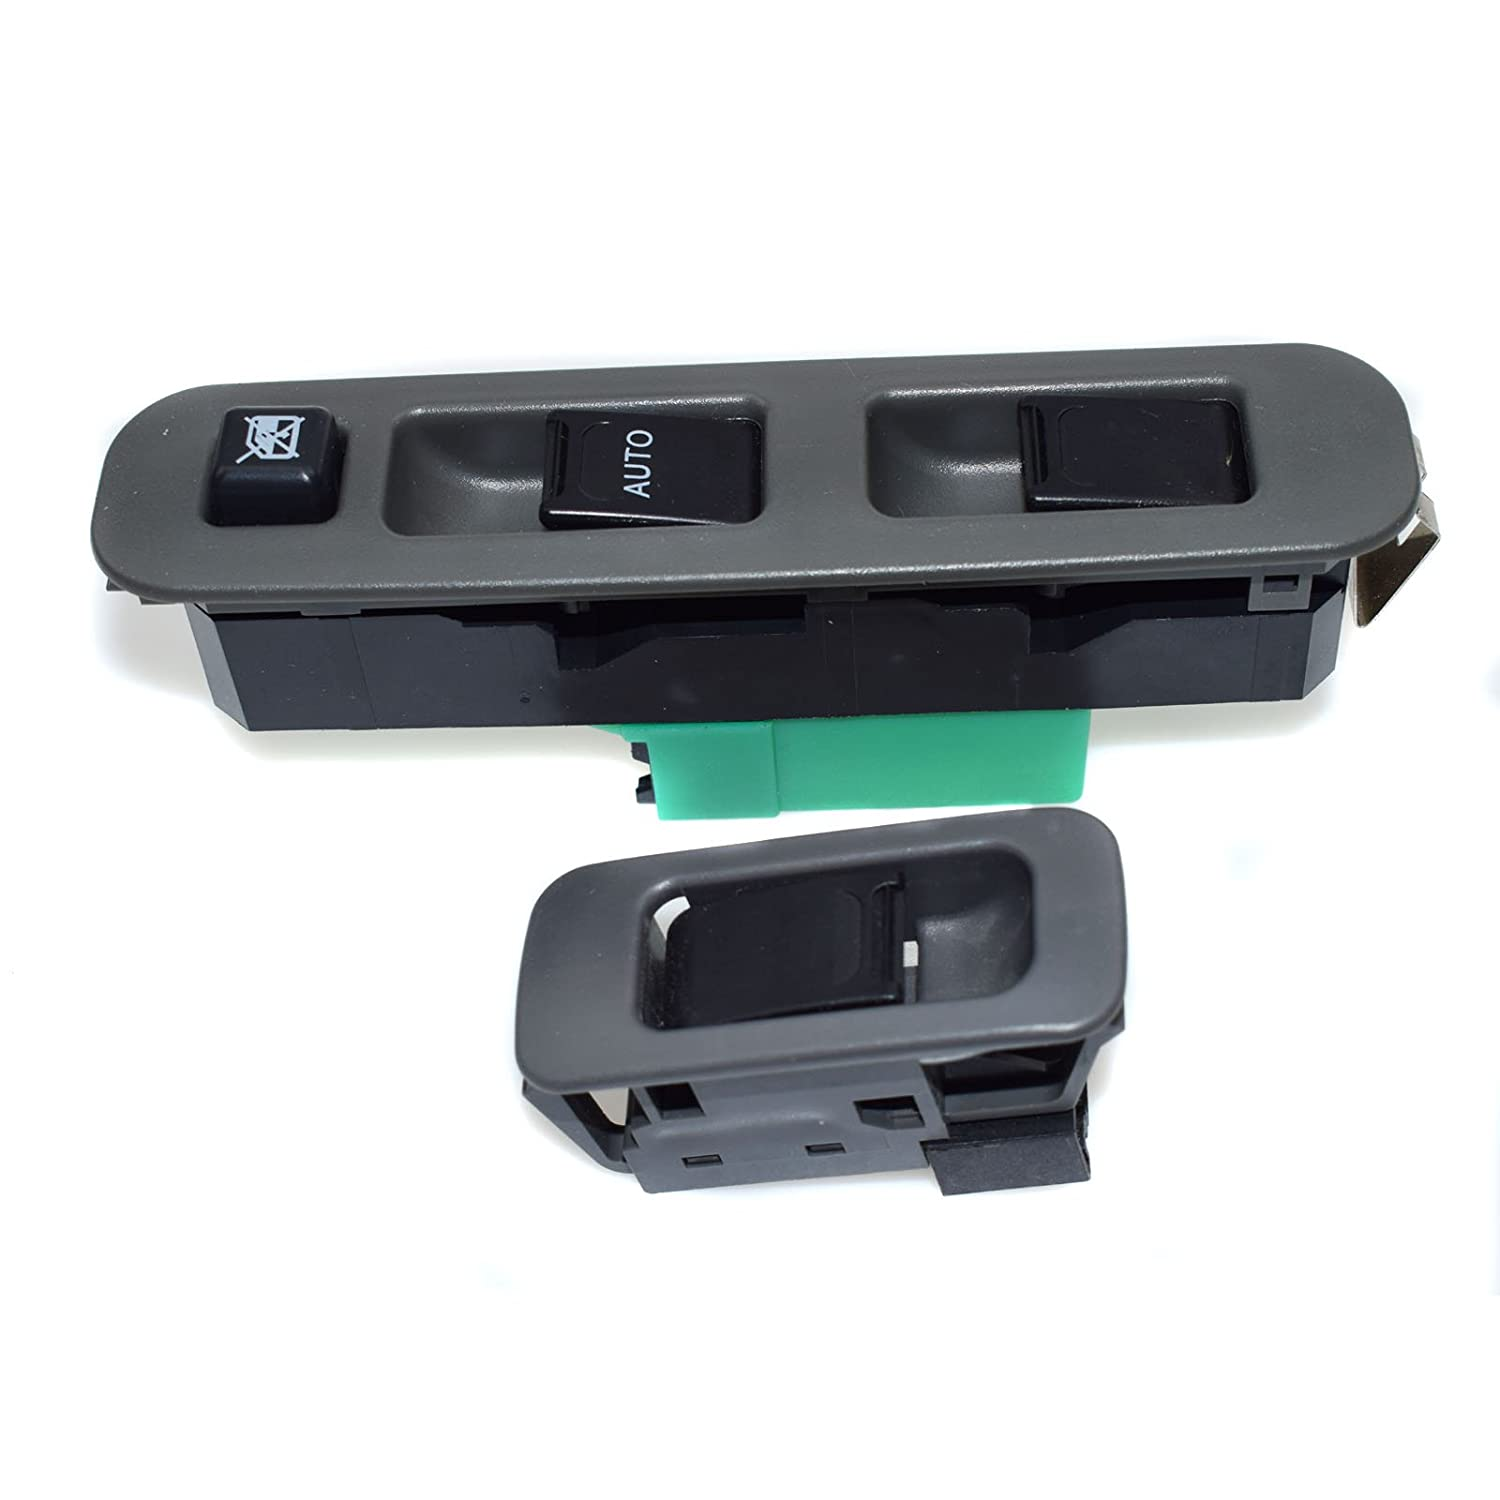 New 37990-81A20 3799081A20P4Z Auto Power Window Control Switch Left Driver /& Right Passenger Side For Suzukis Jimnys FJ Carry Alto Ignis 1998 1999 2000 2001 2002 2003 2004 2005 2006 2007 2008 2009 2010 2011 2012 2013 2014 2015